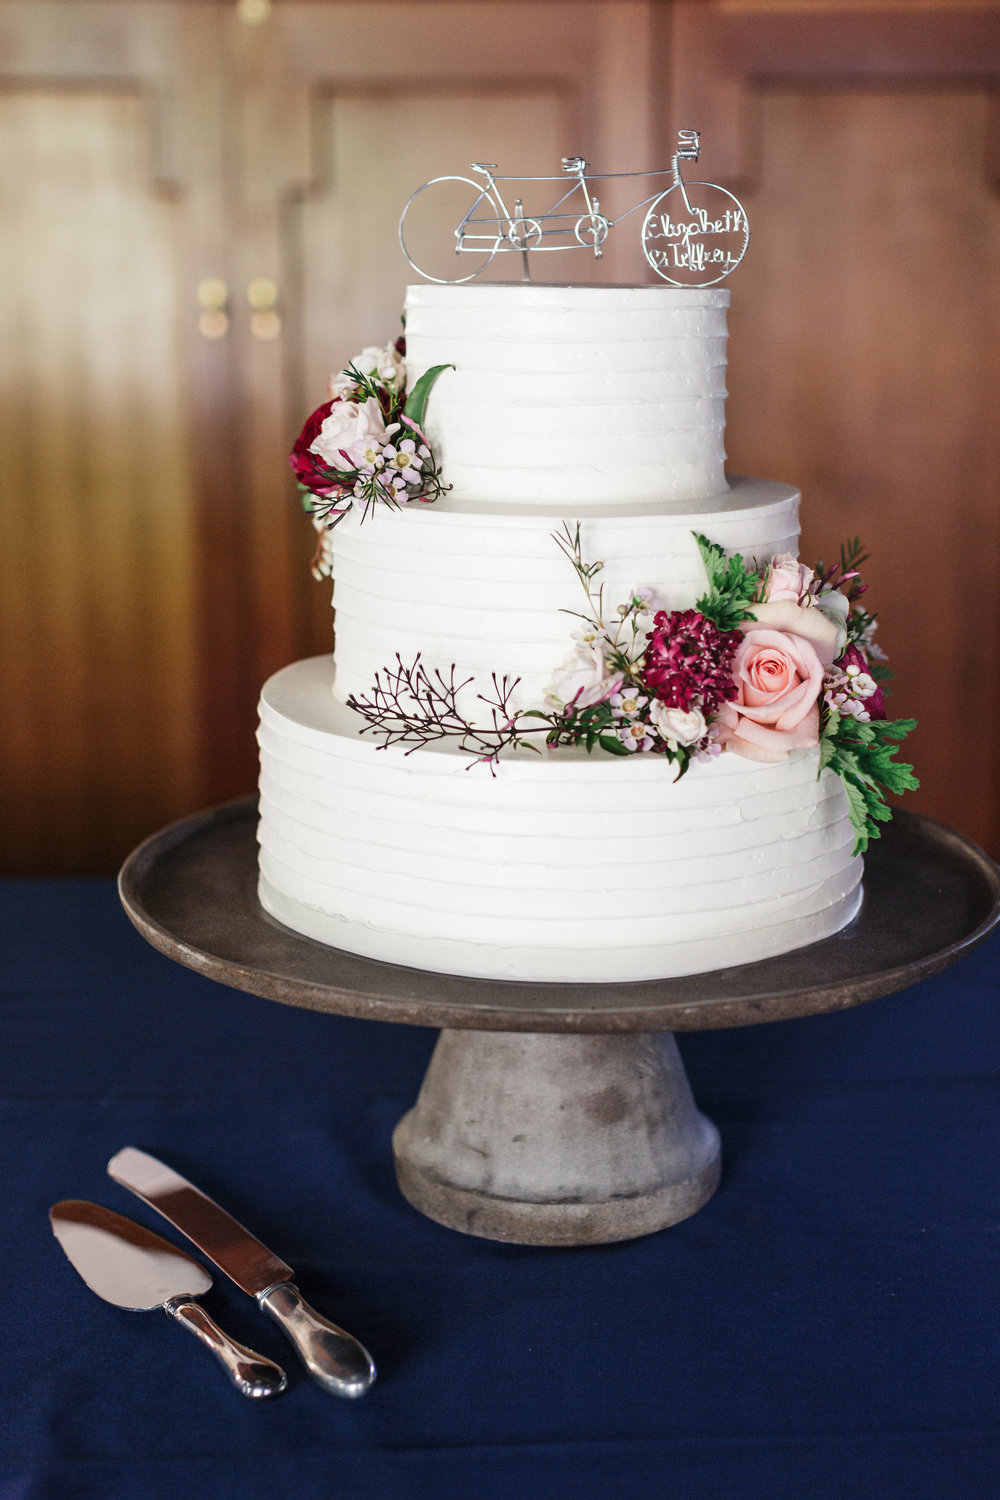 Three tier wedding cake by Branching out cakes with flowers by Venn Floral at The Outdoor Art Club in Mill Valley, California with Torrey Fox Photography, Sage Catering, and Oh Splendid Day.